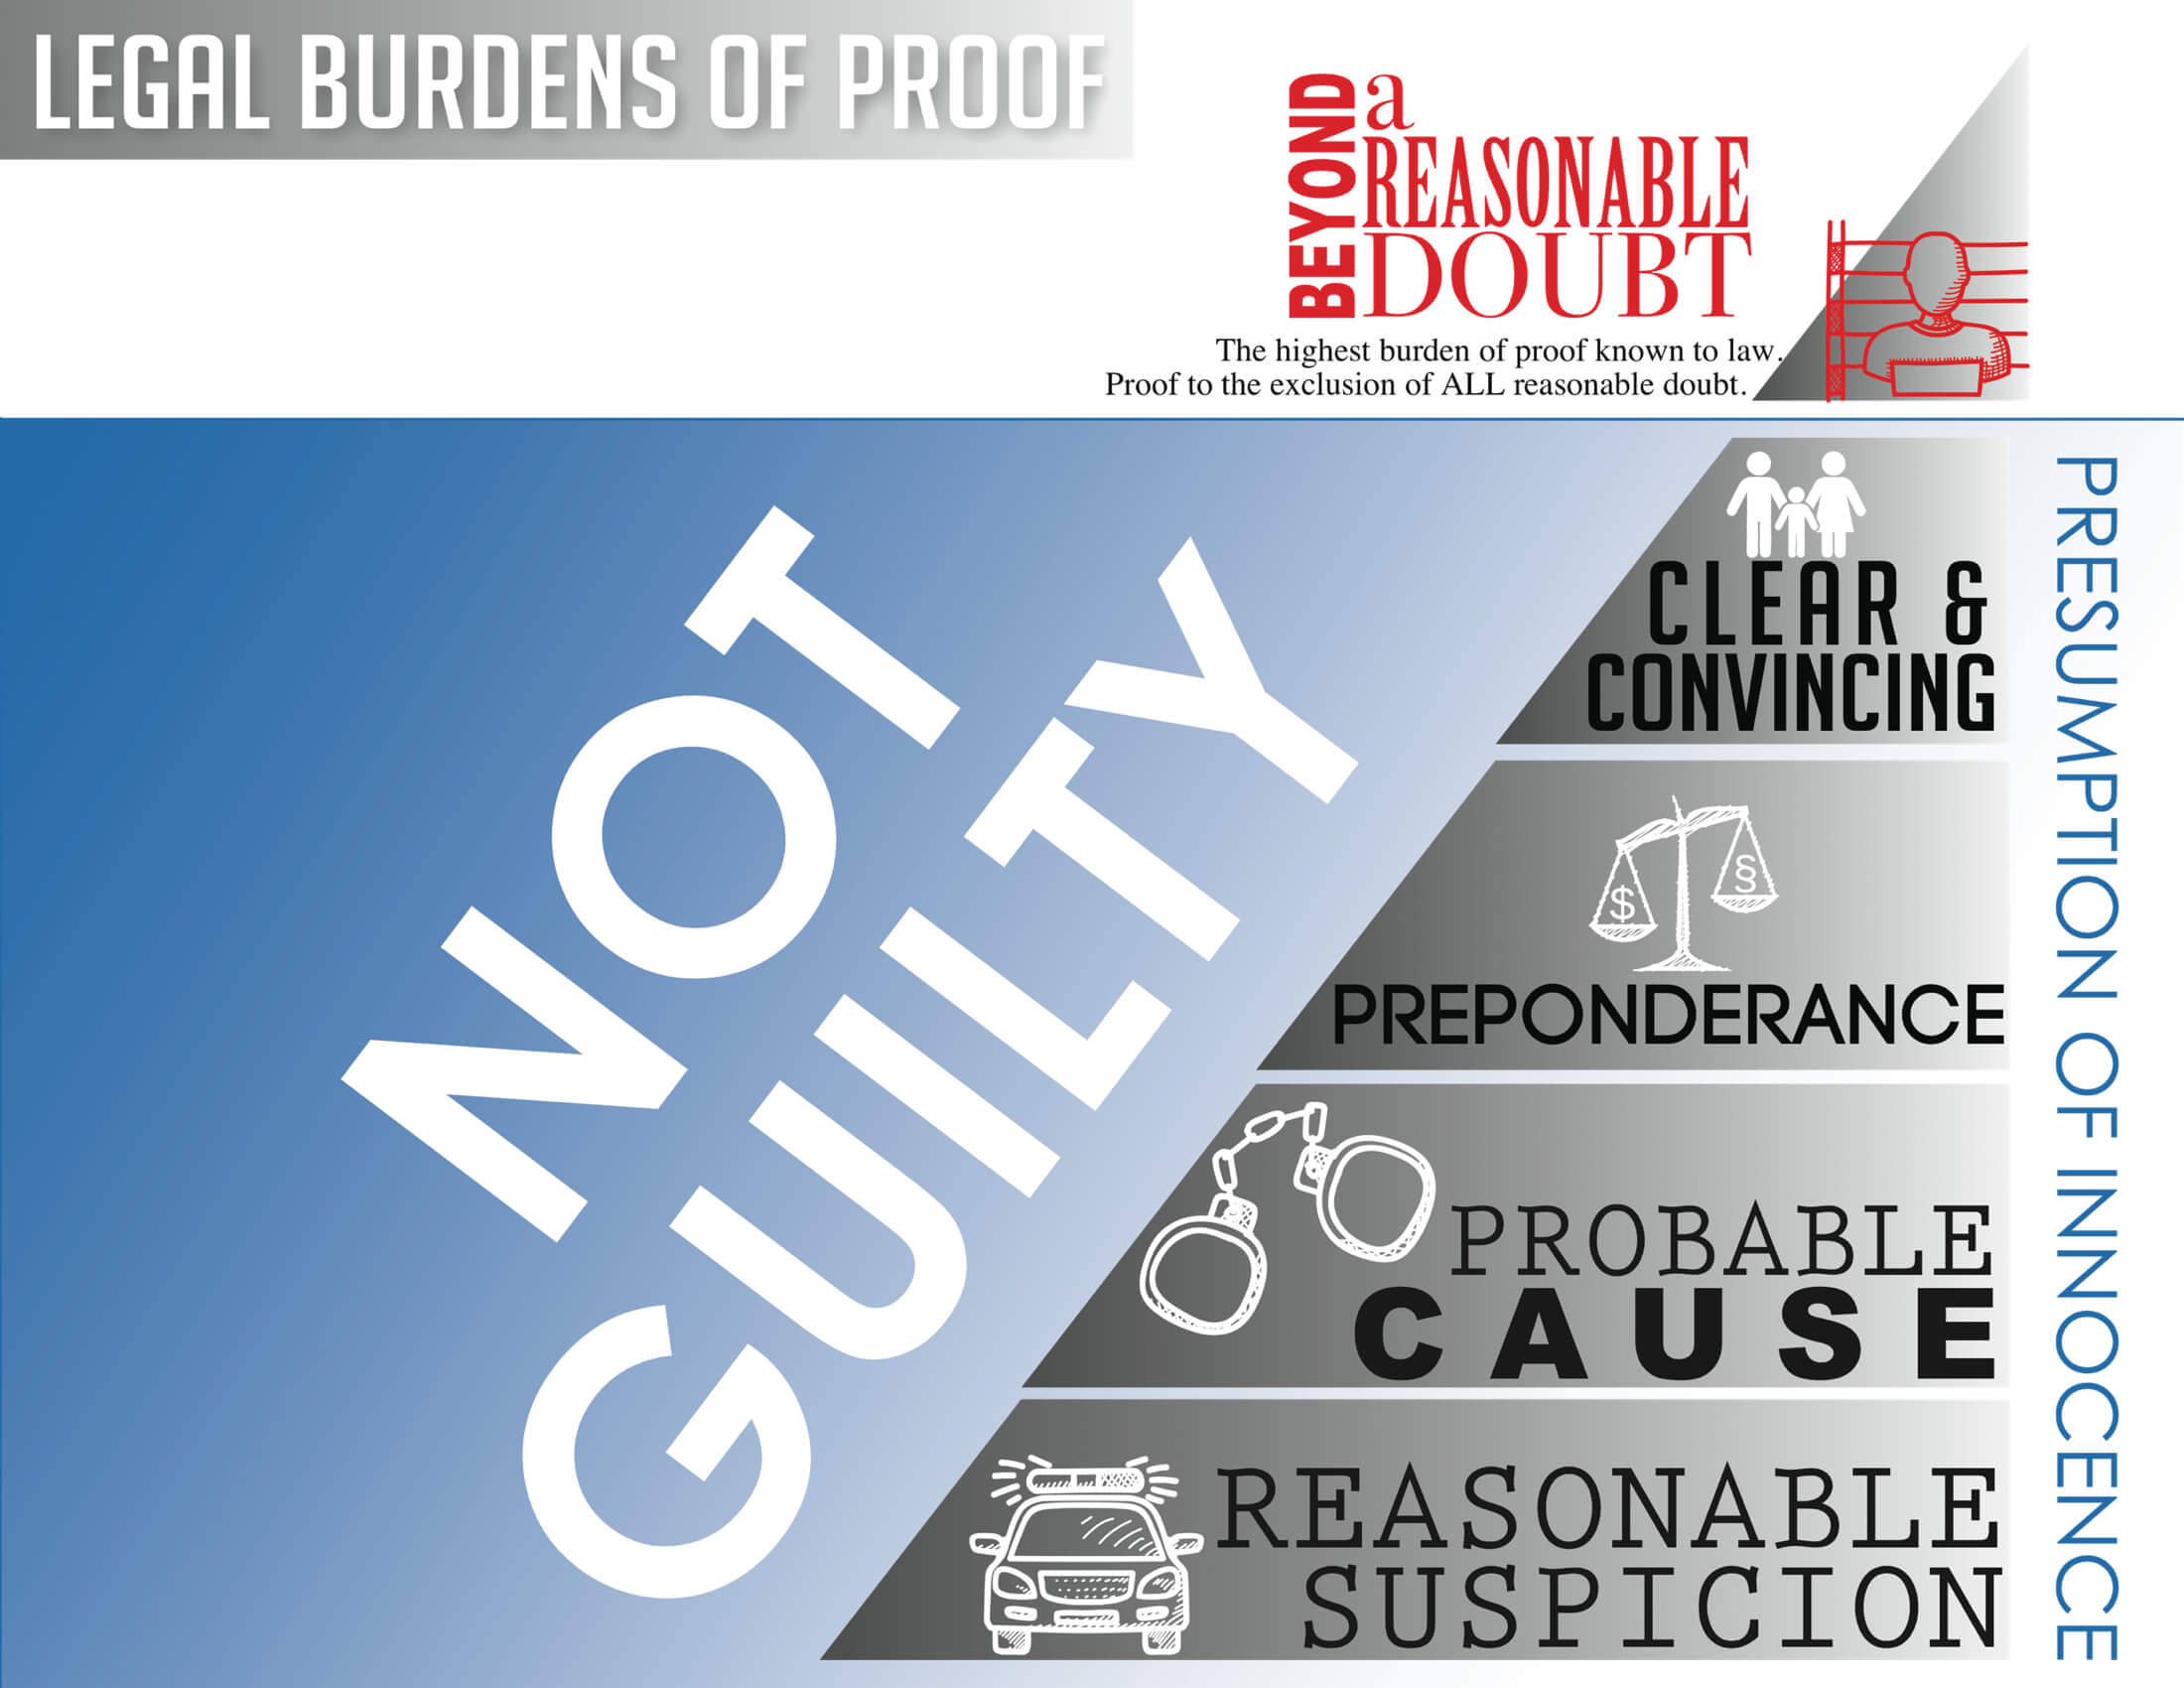 Landscape Image Power Point Slide for Legal Burdens of Proof in the United States